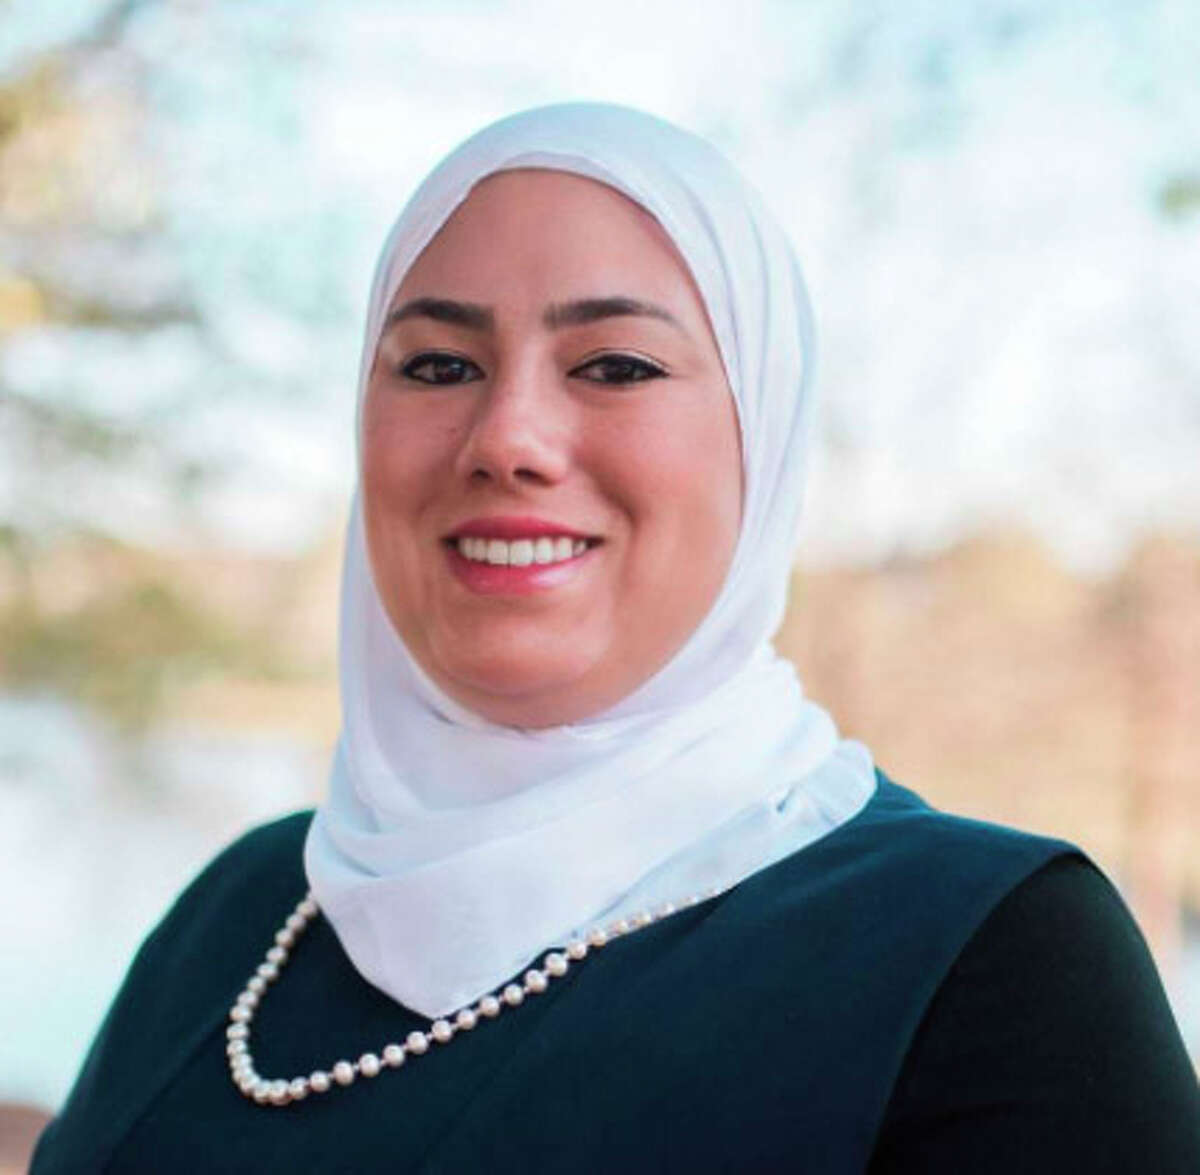 Dalia Kasseb hoped to bring new ideas to Pearland government. Wiltz, running for mayor, and Kasseb, for city council, lost the recent election by nearly identical margins.